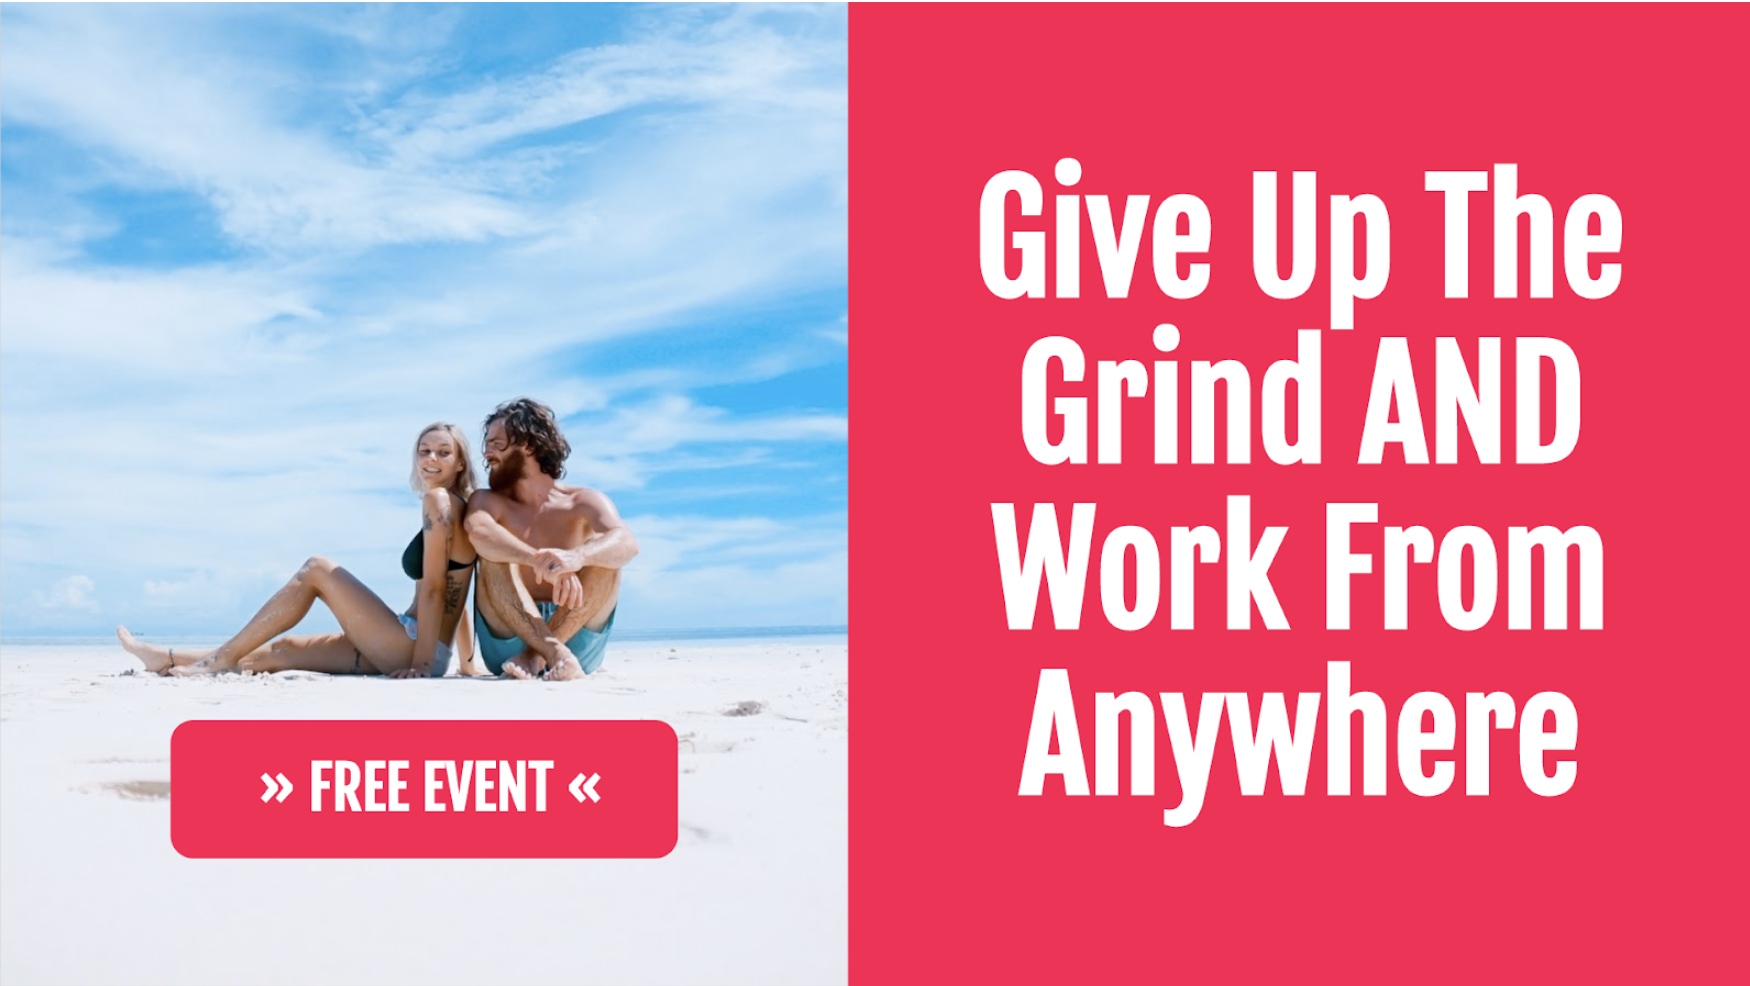 Avoid The Corporate Grind & Earn A Six Figure Income Working From Anywhere